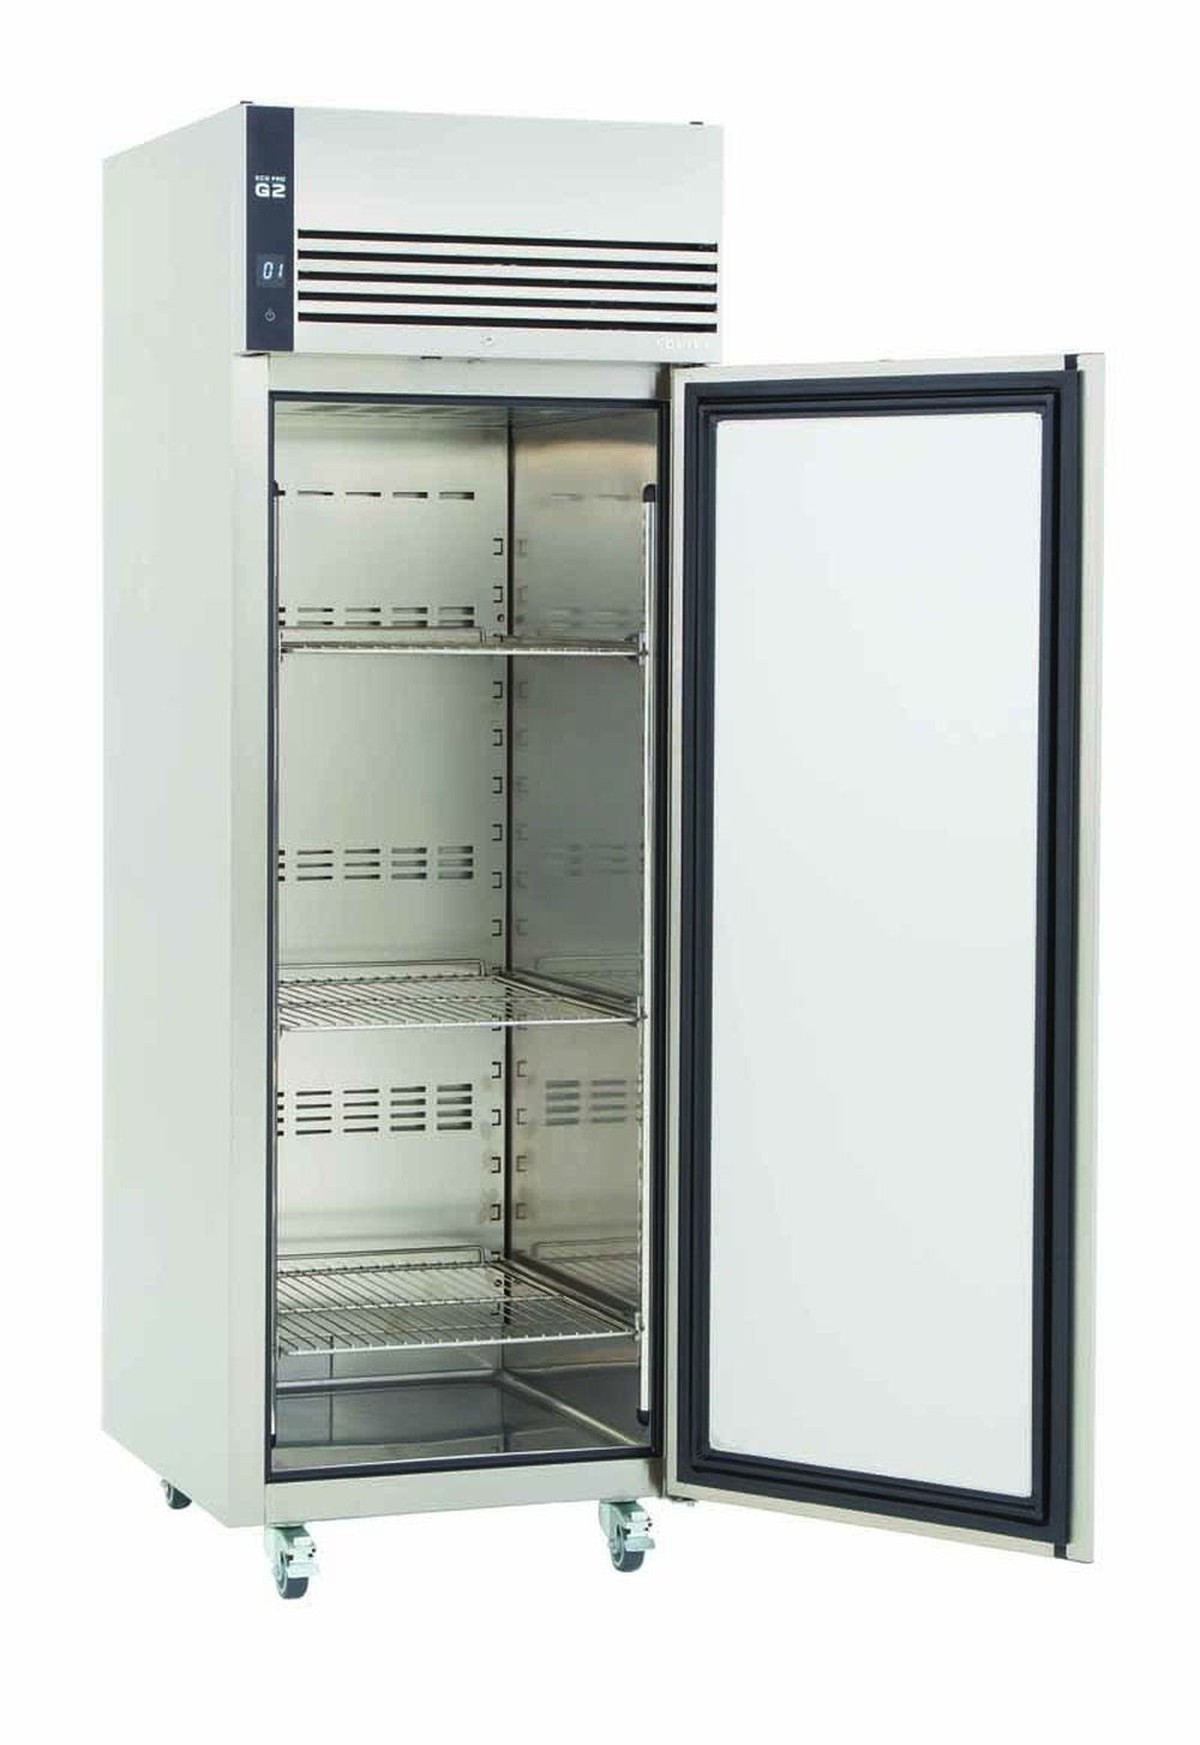 Kitchen Cabinets For Sale London Secondhand Catering Equipment Upright Freezers Freezer